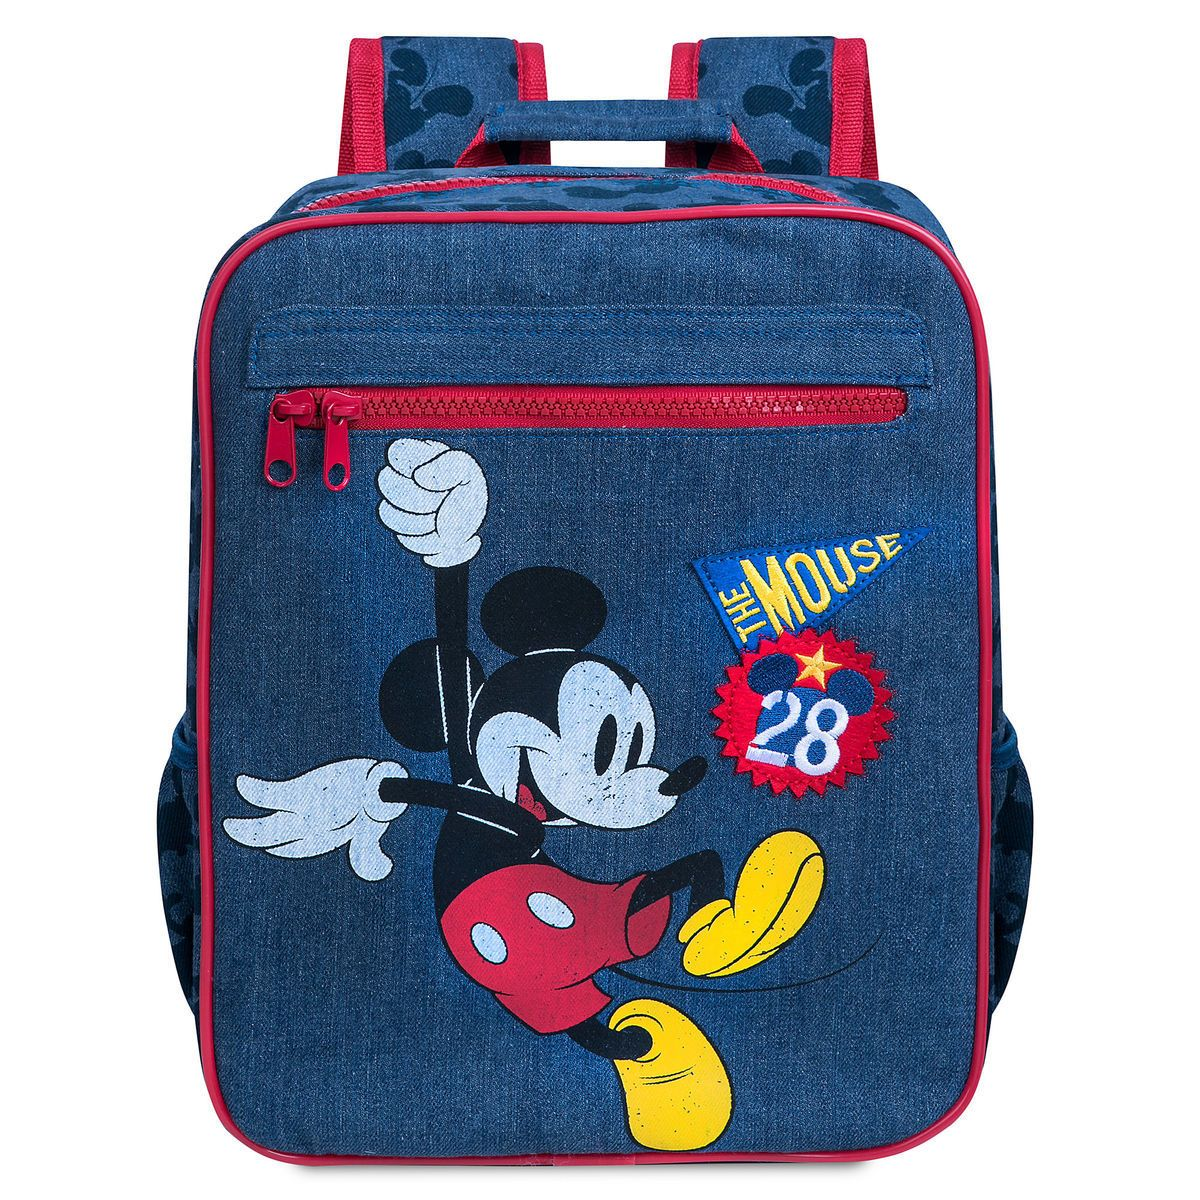 Georgine Saves » Blog Archive » Good Deal  Shop Disney  10 Items  10 Off  ONLINE ONLY! 05732e1a2d926